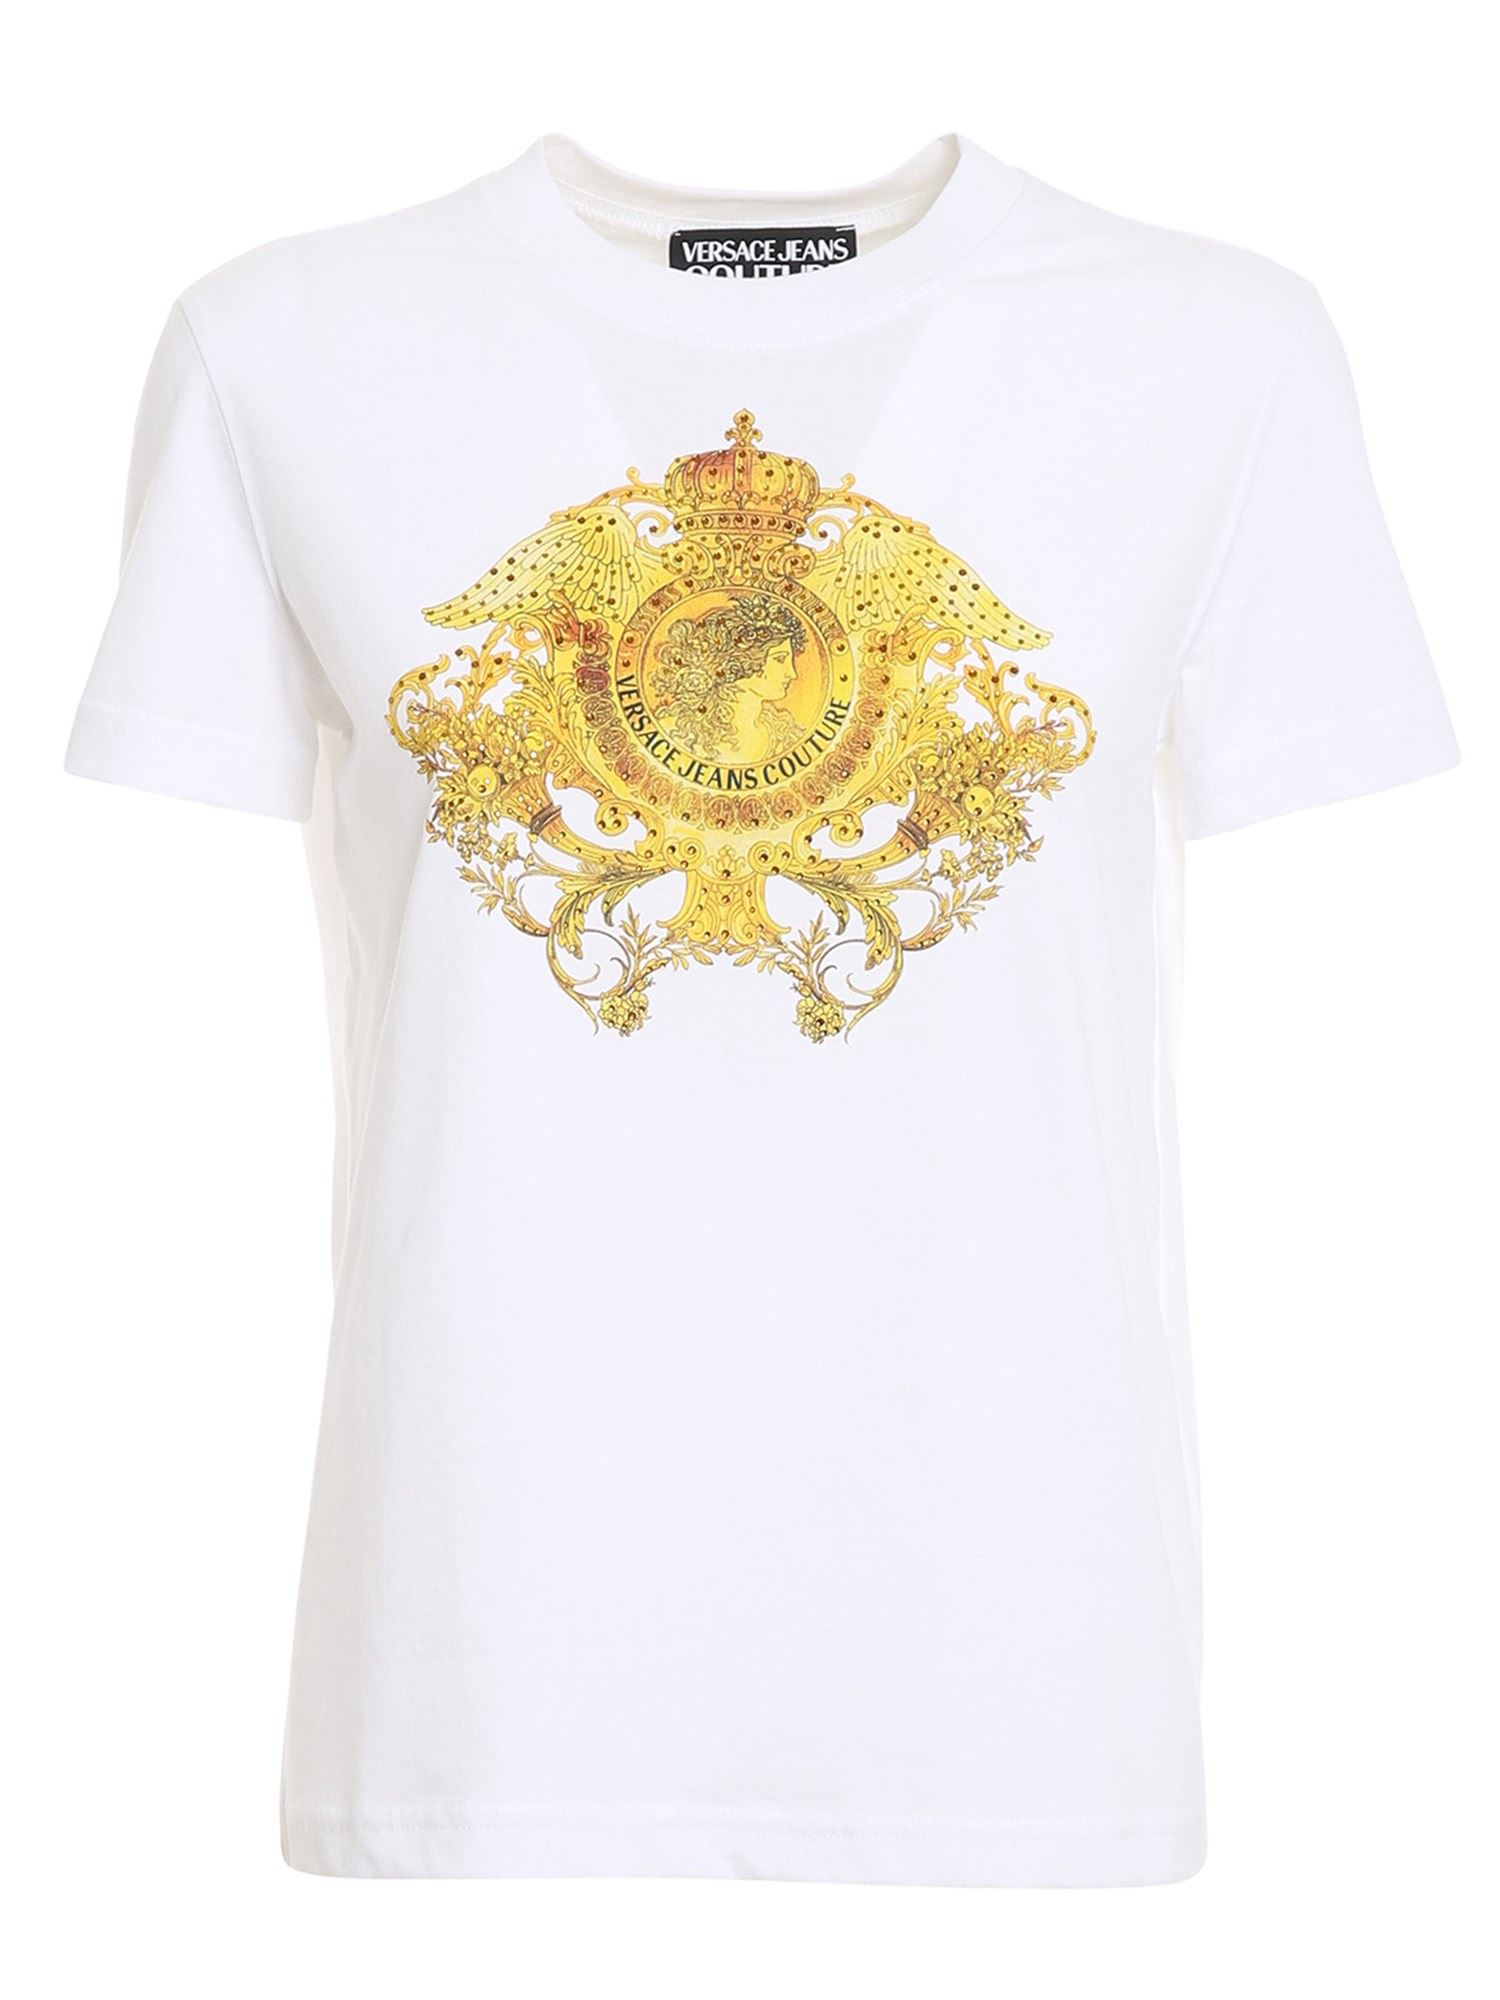 Versace Jeans Couture GOLDEN LOGO T-SHIRT IN WHITE